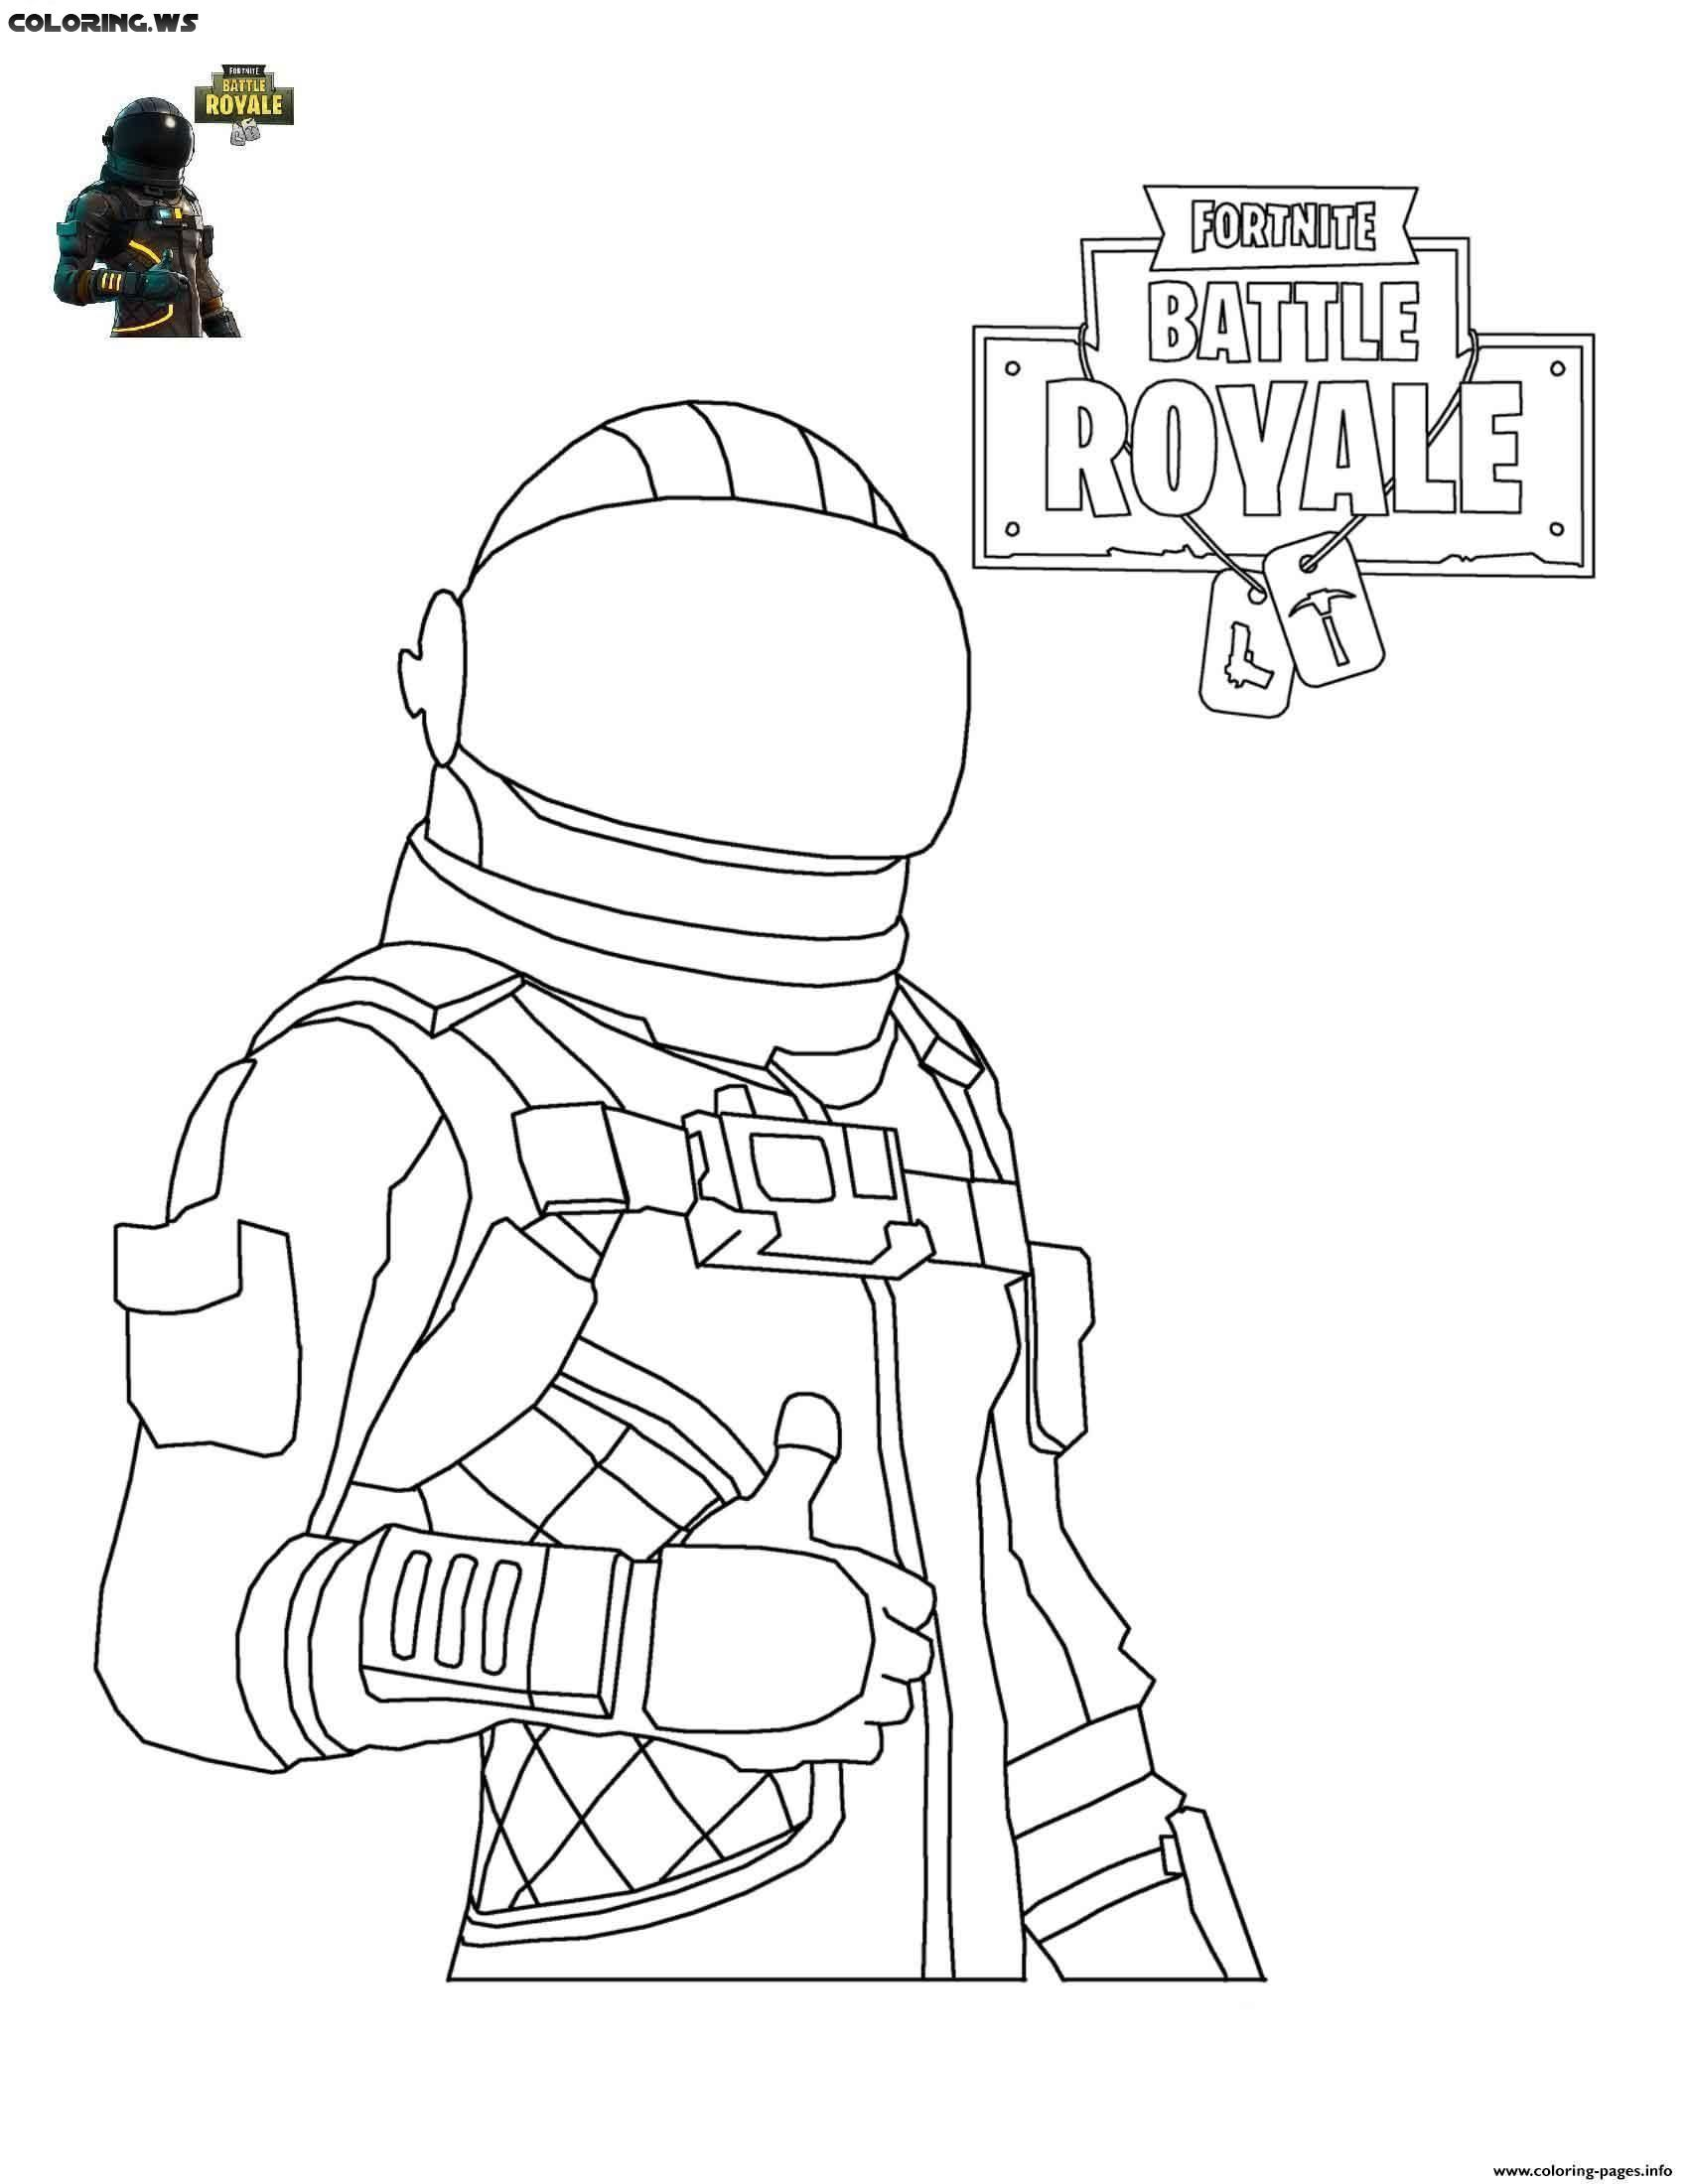 Fortnite Dark Voyager Coloring Pages Darkvoyager Fortnite Halloween Coloring Sheets Cute Coloring Pages Colouring Pages